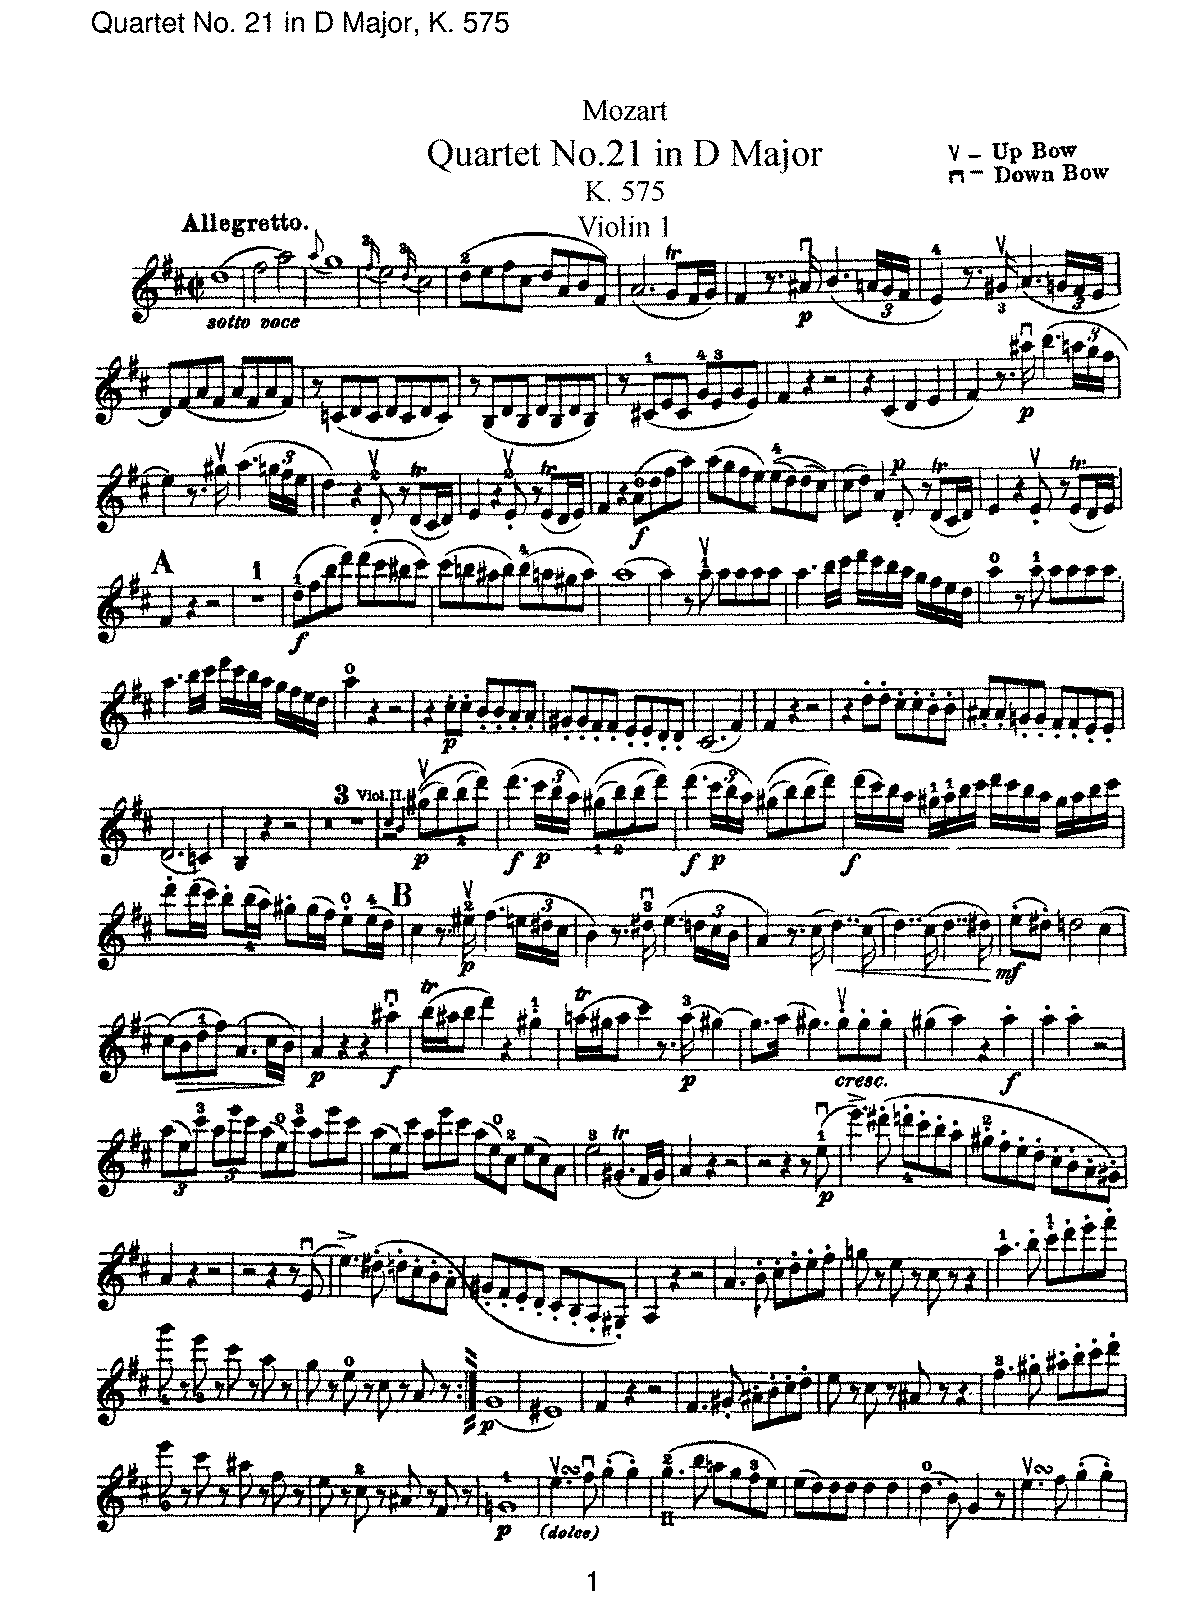 String quartet no21 in d major k575 mozart wolfgang amadeus string quartet no21 in d major k575 mozart wolfgang amadeus imslppetrucci music library free public domain sheet music hexwebz Gallery